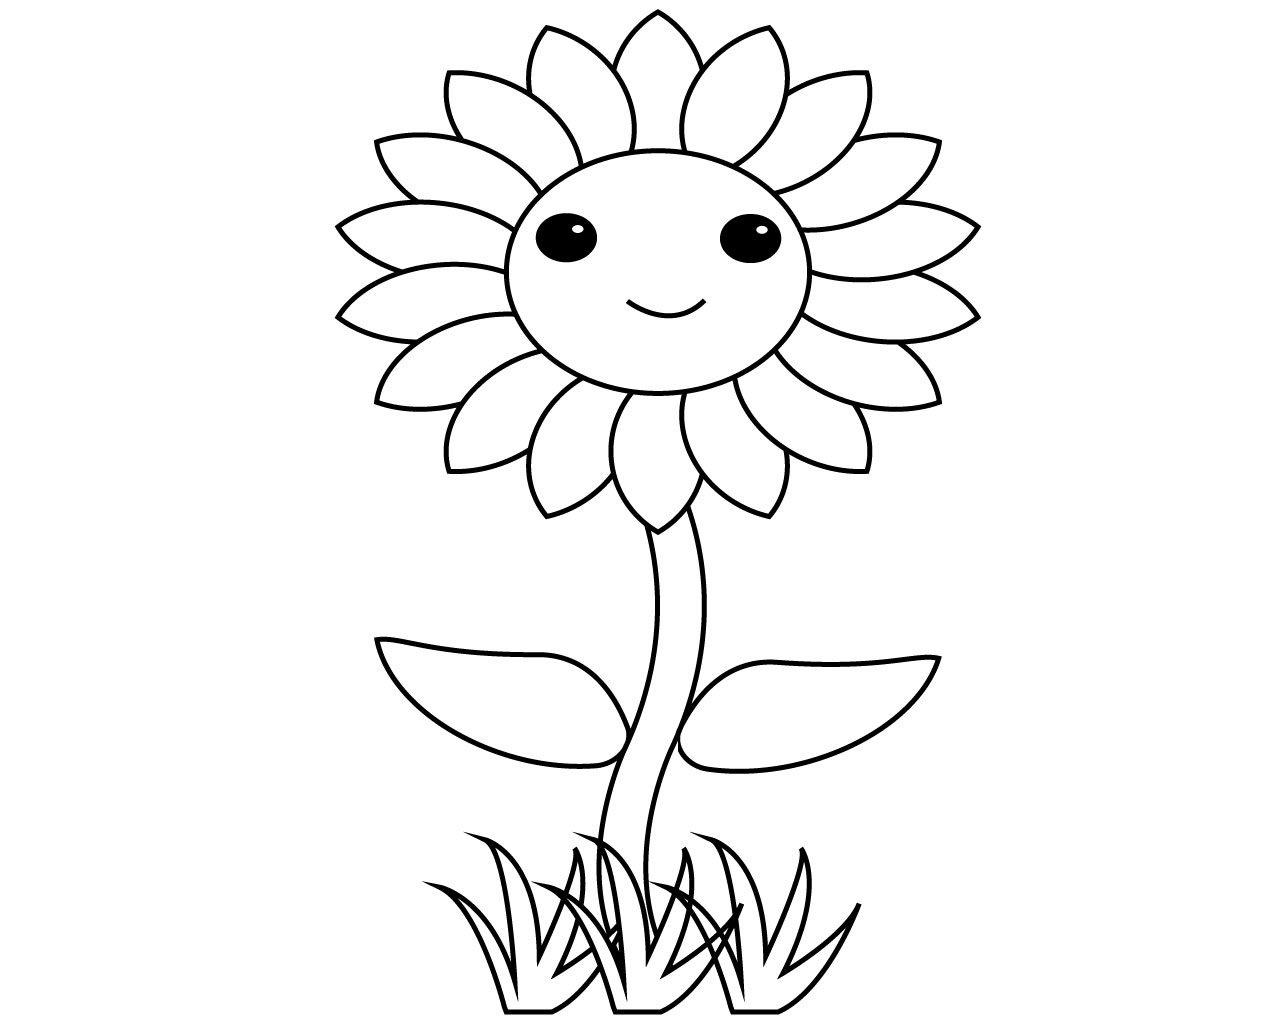 Lotus Flower Petals Coloring Pages Panda Sketch Coloring Page